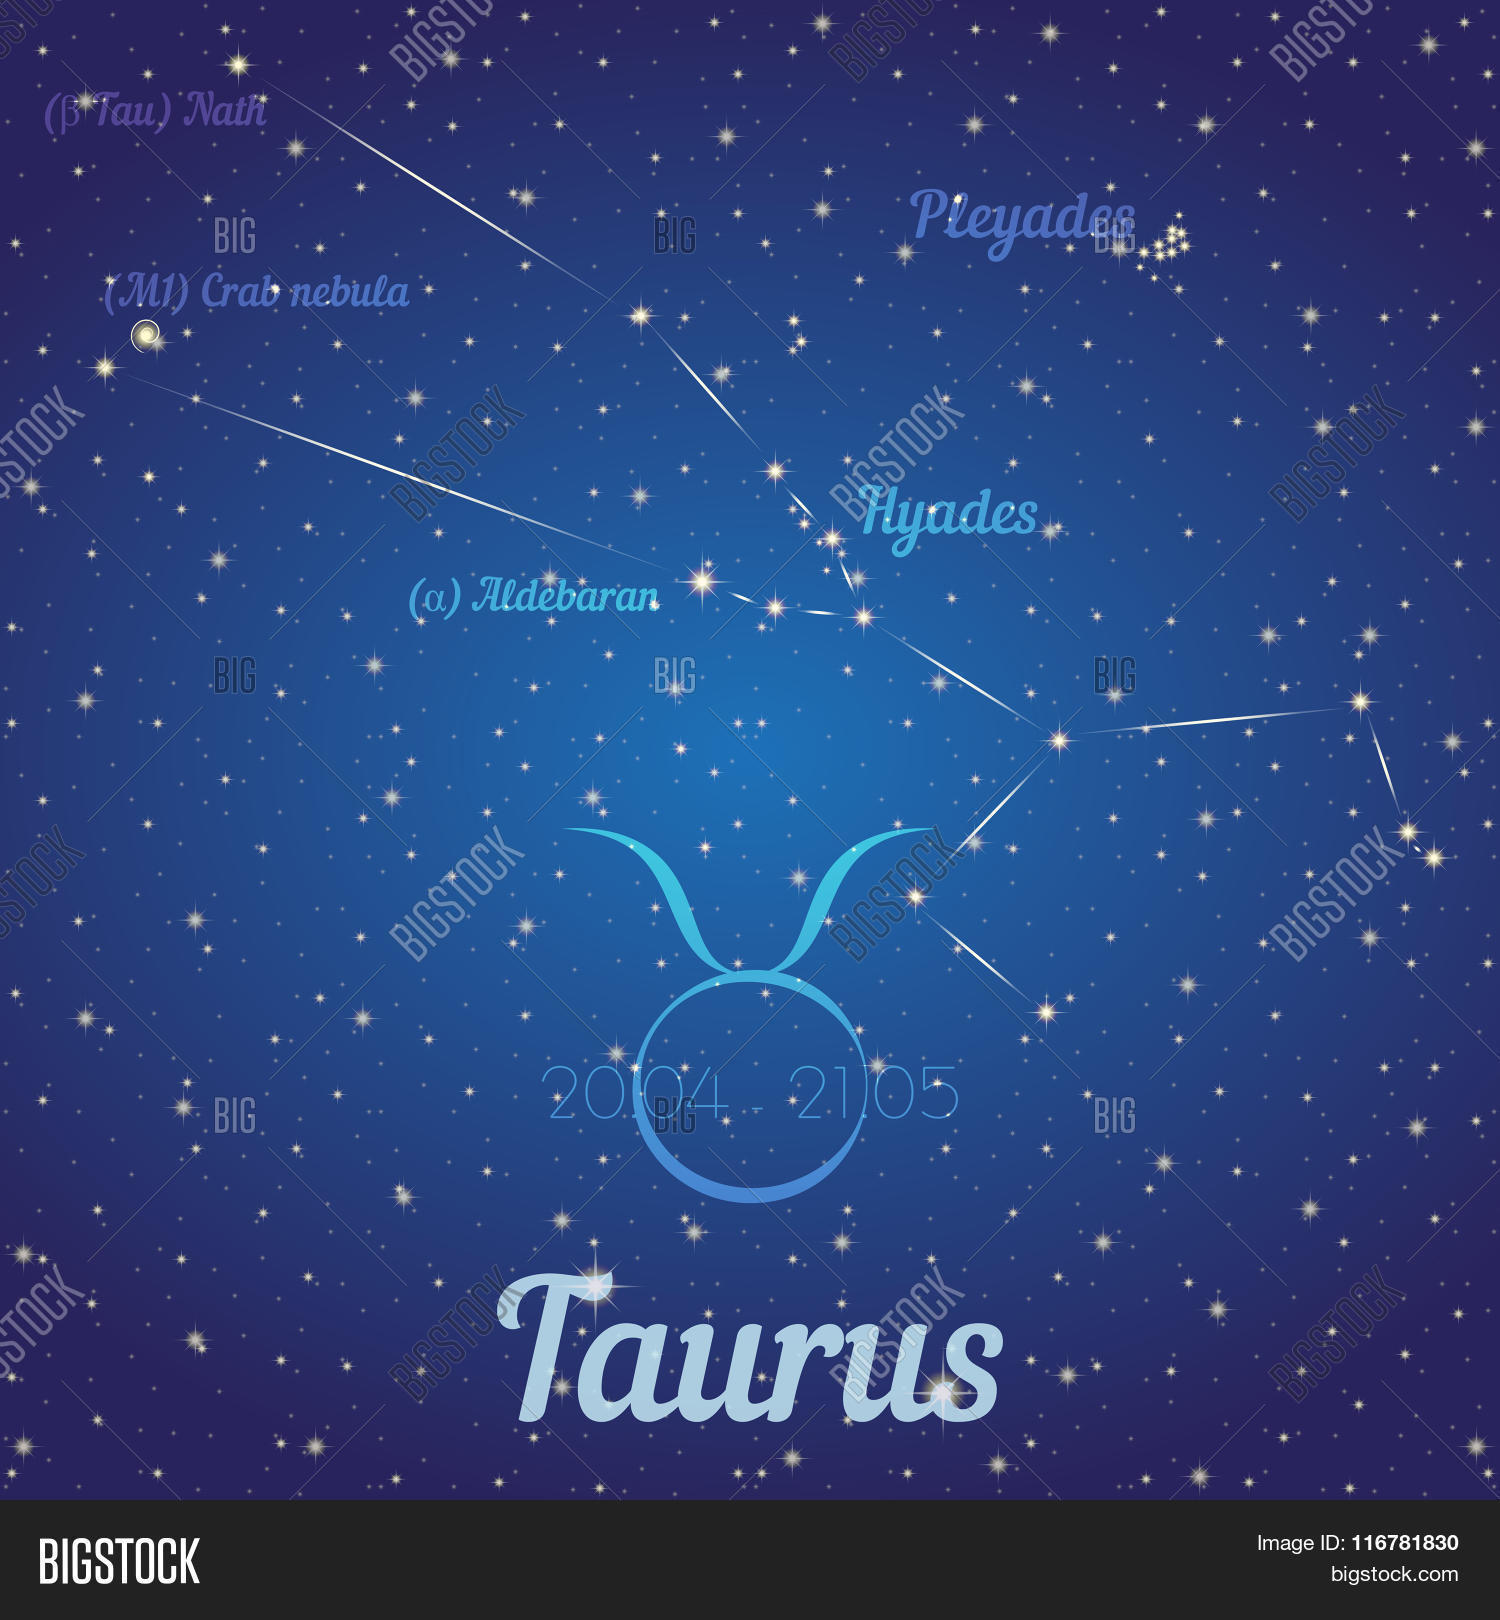 Zodiac Constellation Taurus - Vector & Photo | Bigstock